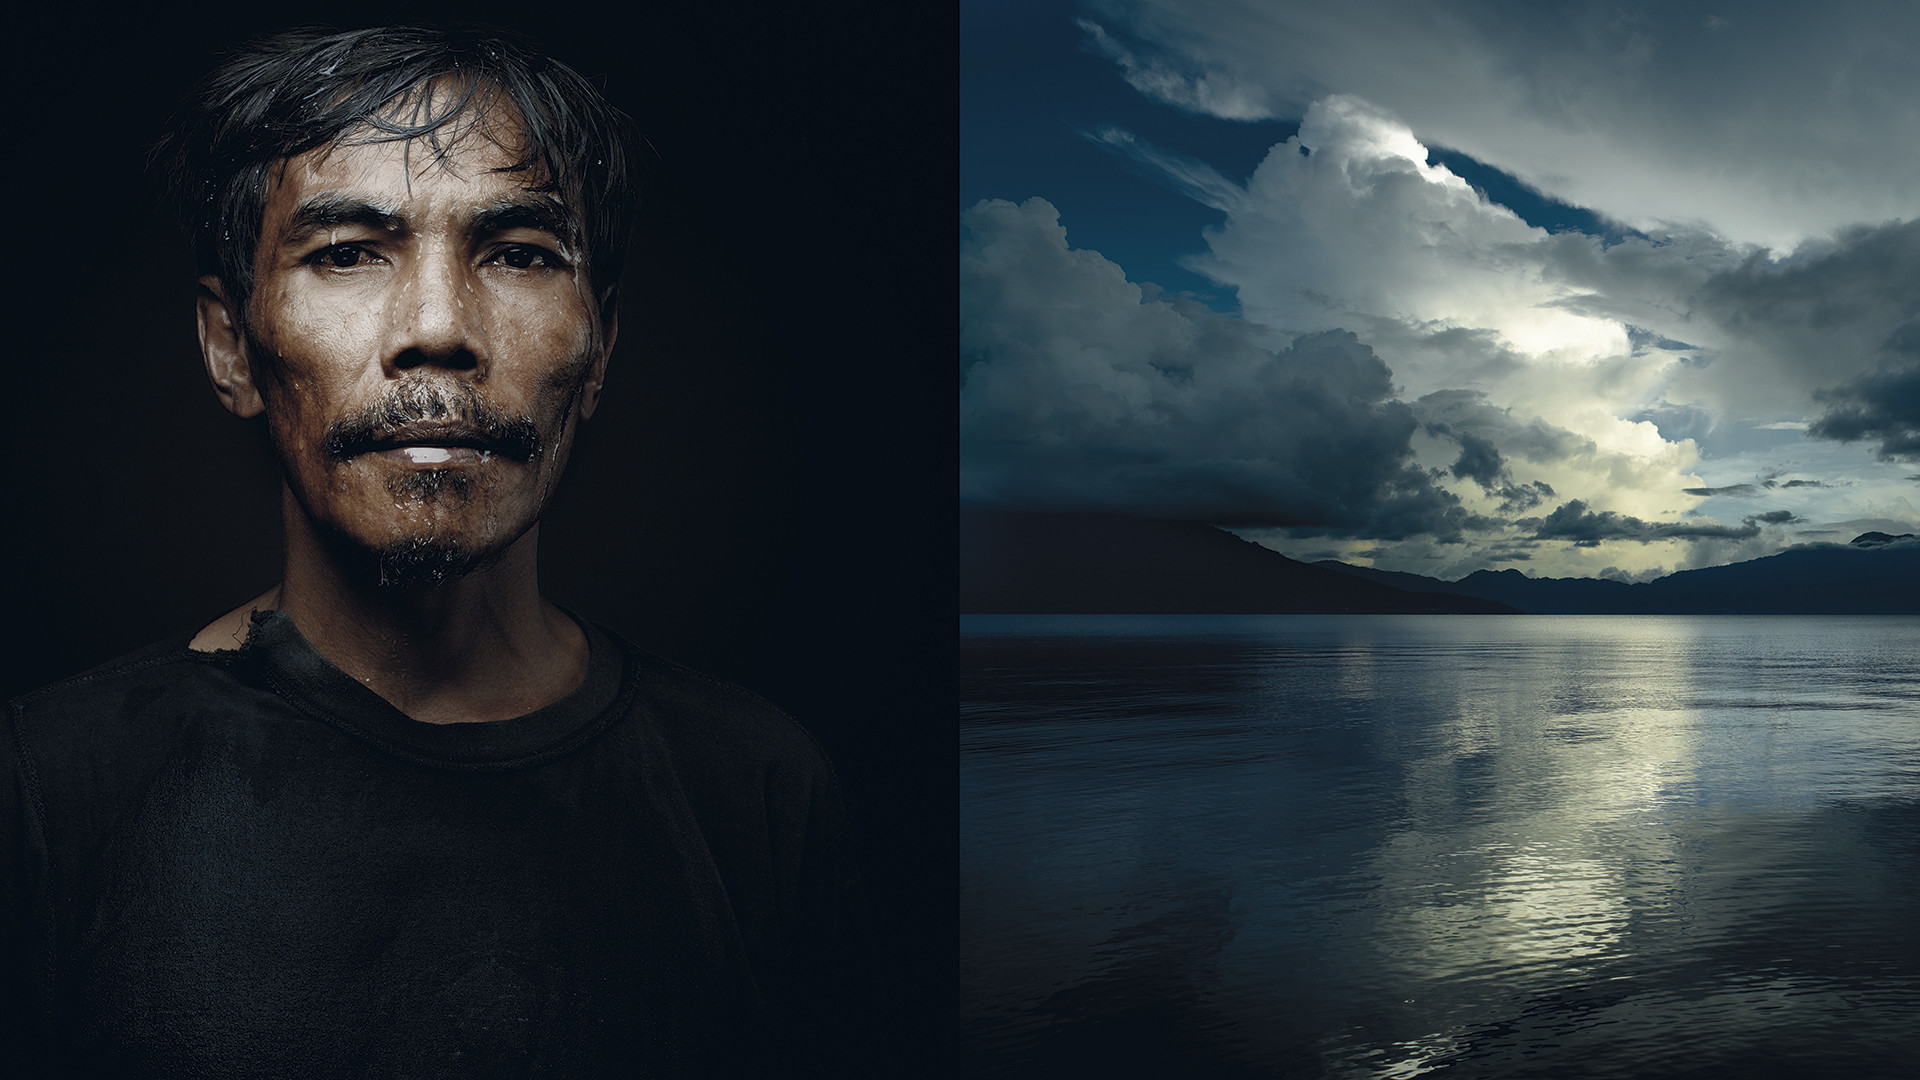 The magical waters of Lake Tanjung seem to be mirrored in the lips of a coffee grower